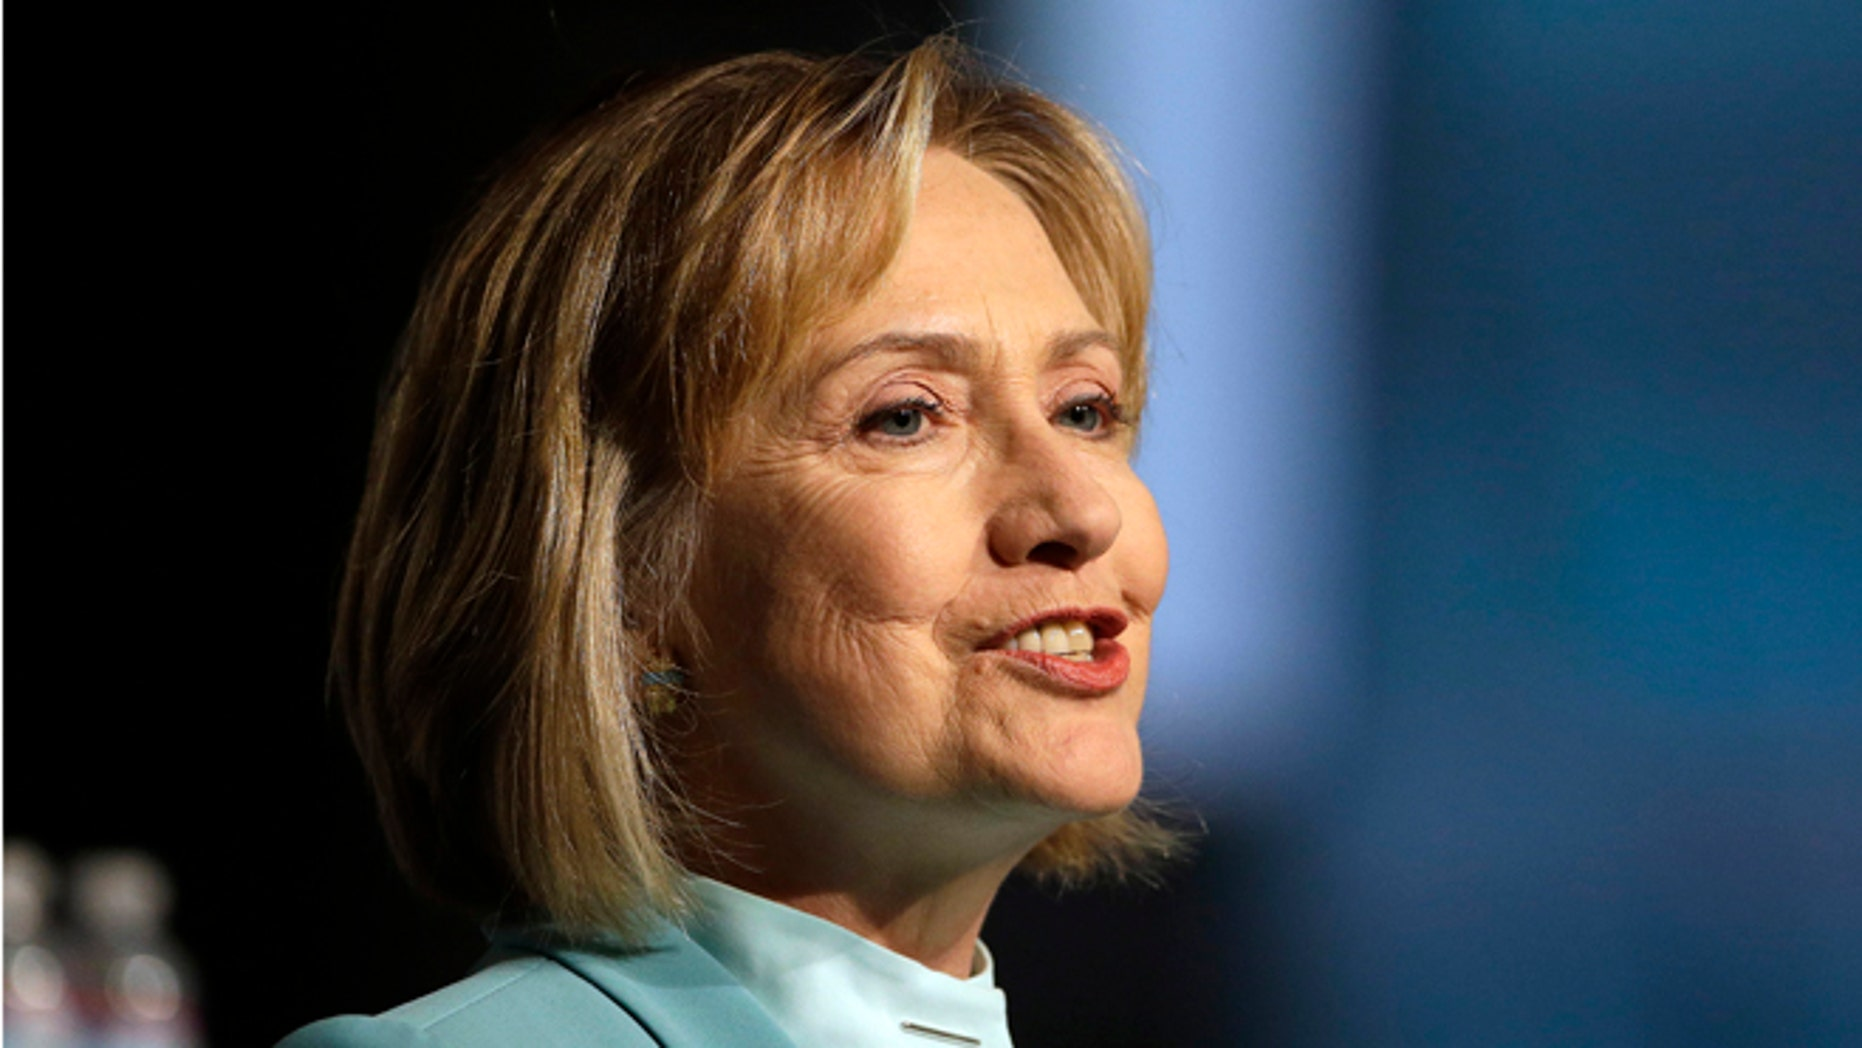 FILE: Aug. 12, 2013: Former Secretary of State Hillary Clinton speaks at the American Bar Association's annual meeting, in San Francisco, Calif.